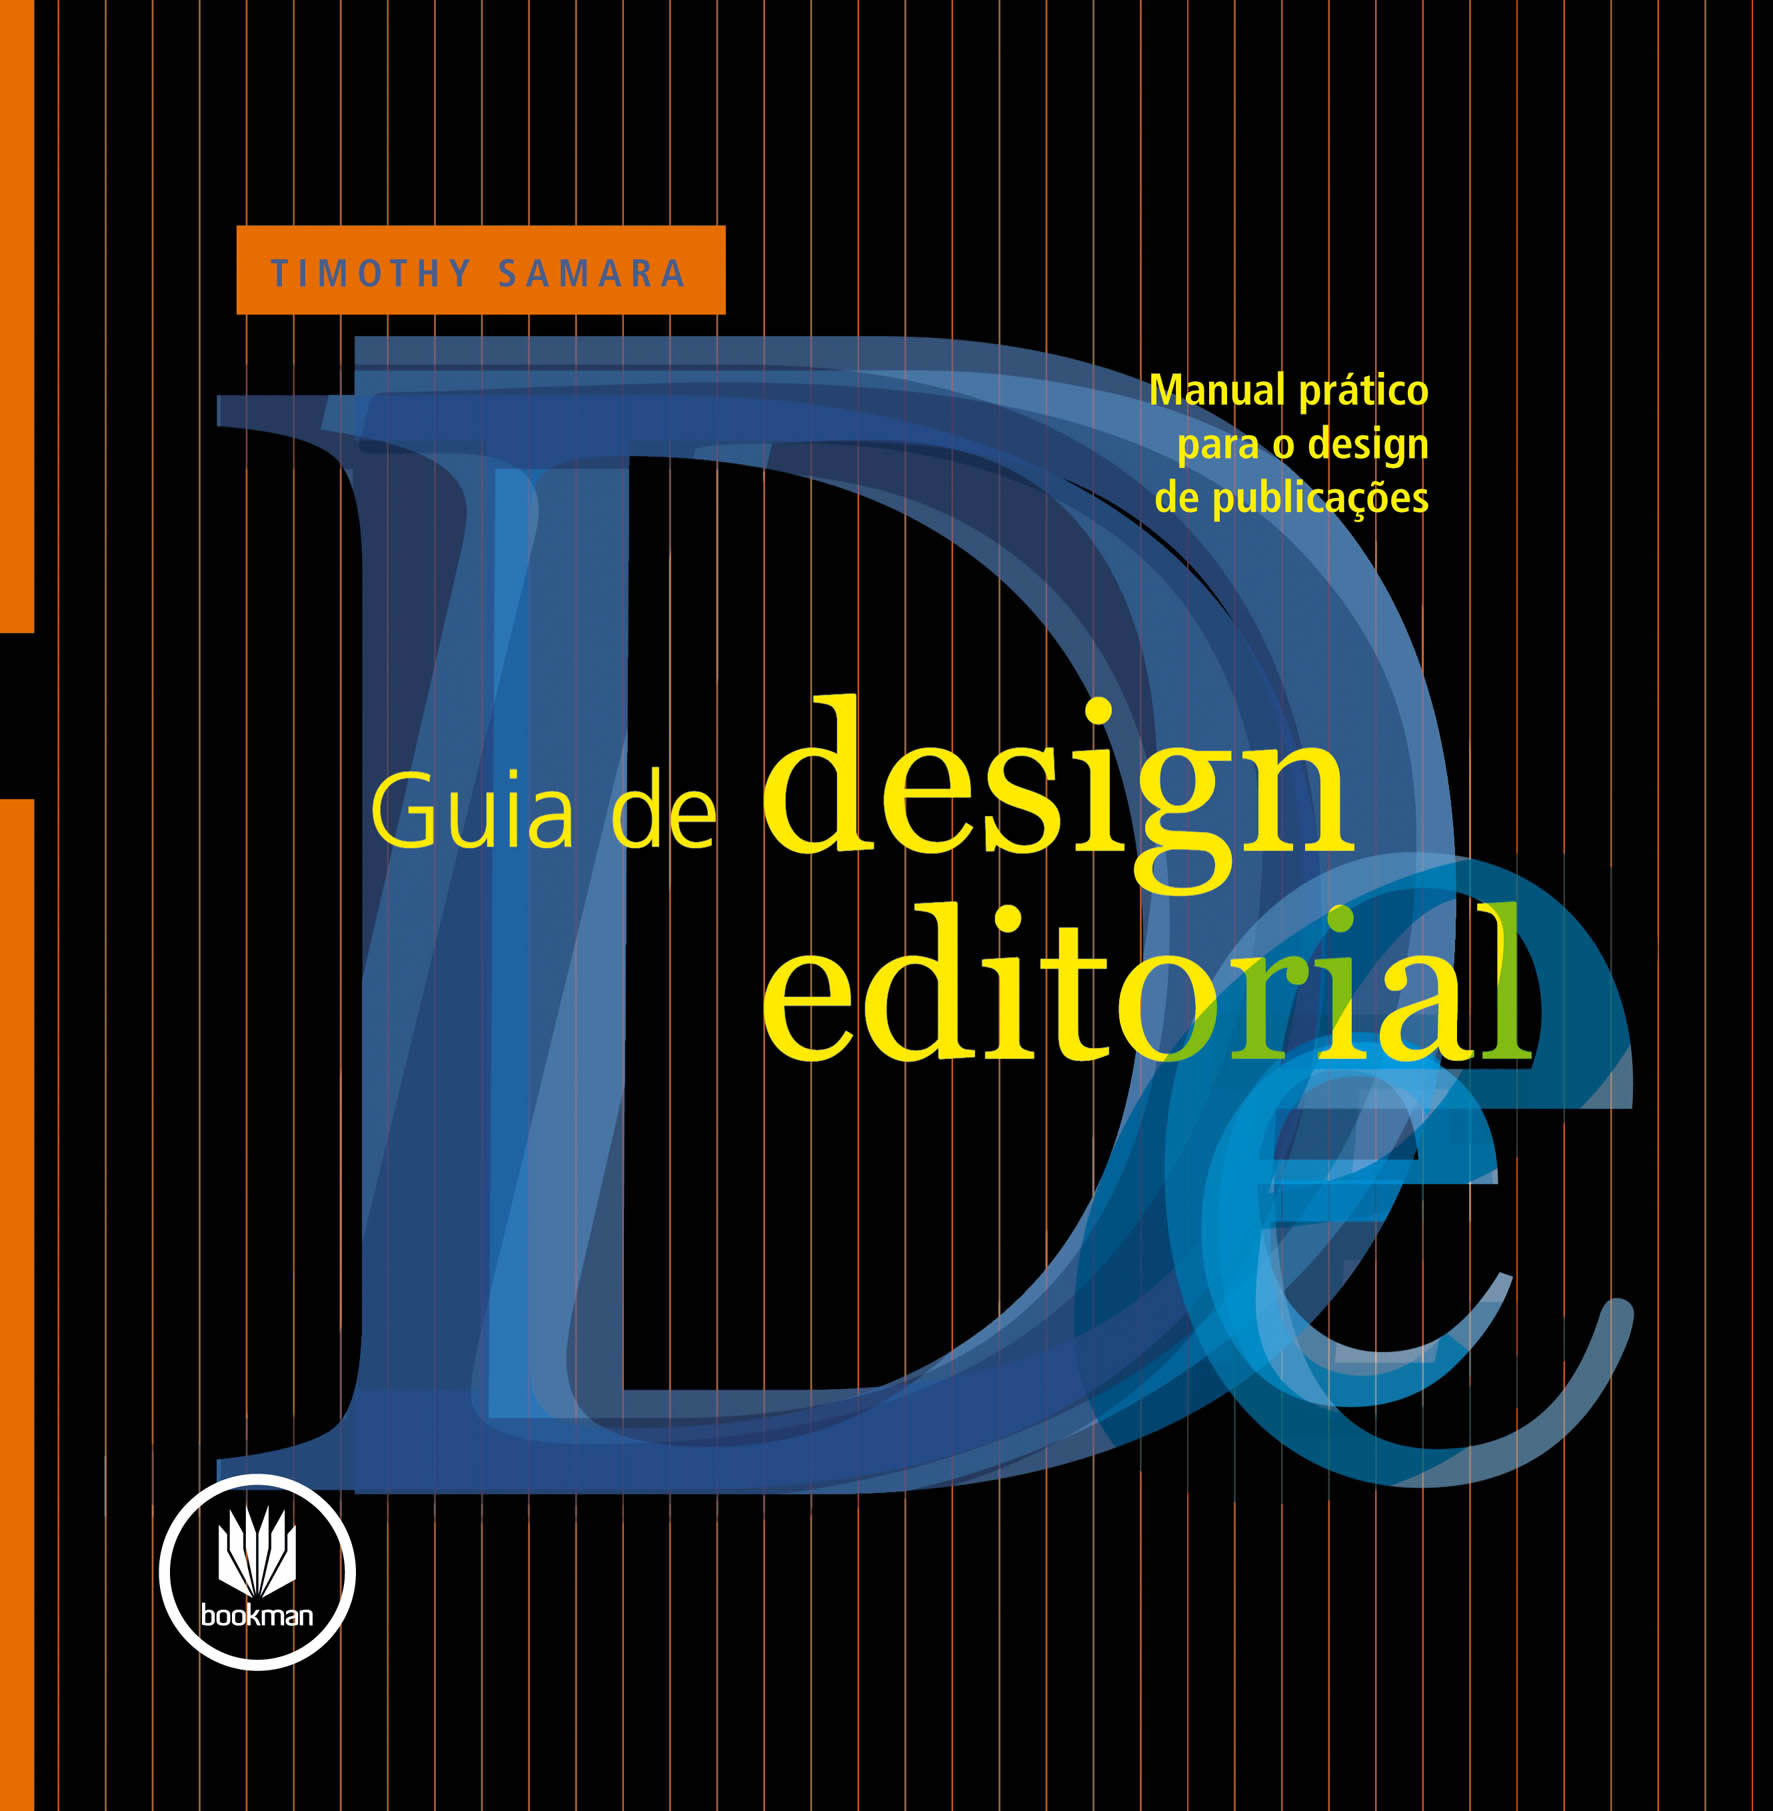 tr8-SAMARA_Guia_design_editorial.jpg